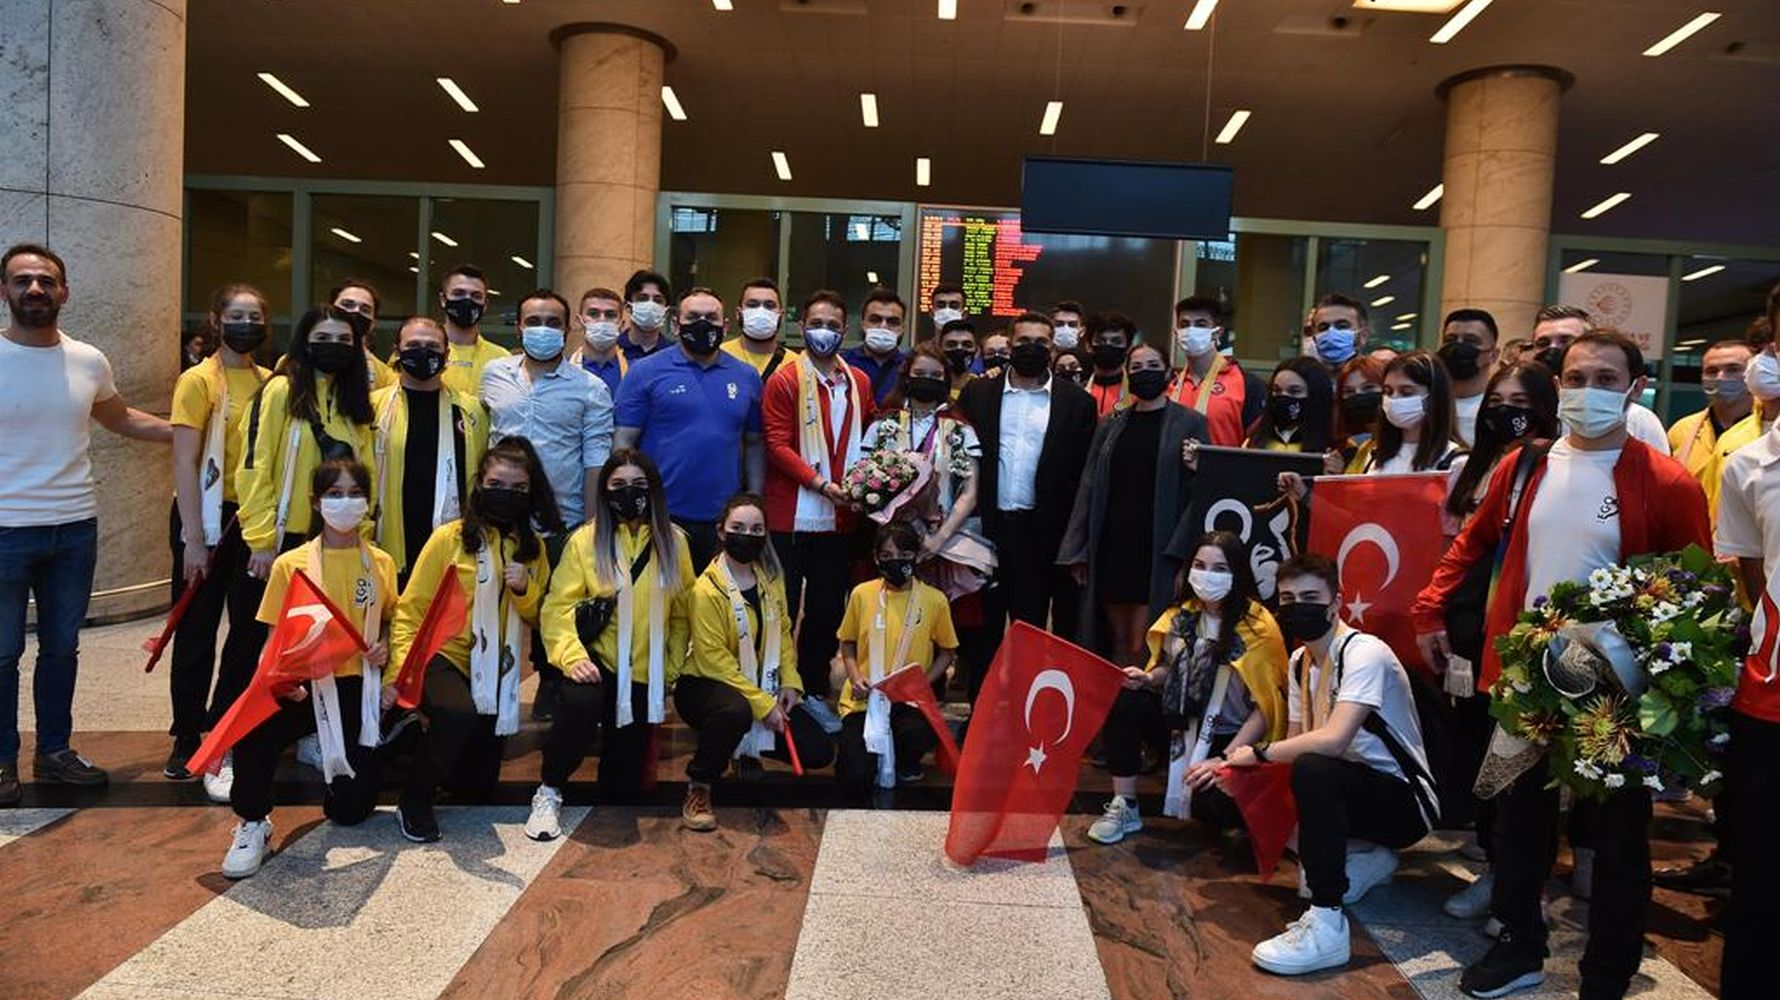 Ayse begum, the world champion of aerobic gymnastics with ego sports, was greeted with enthusiasm in the capital.